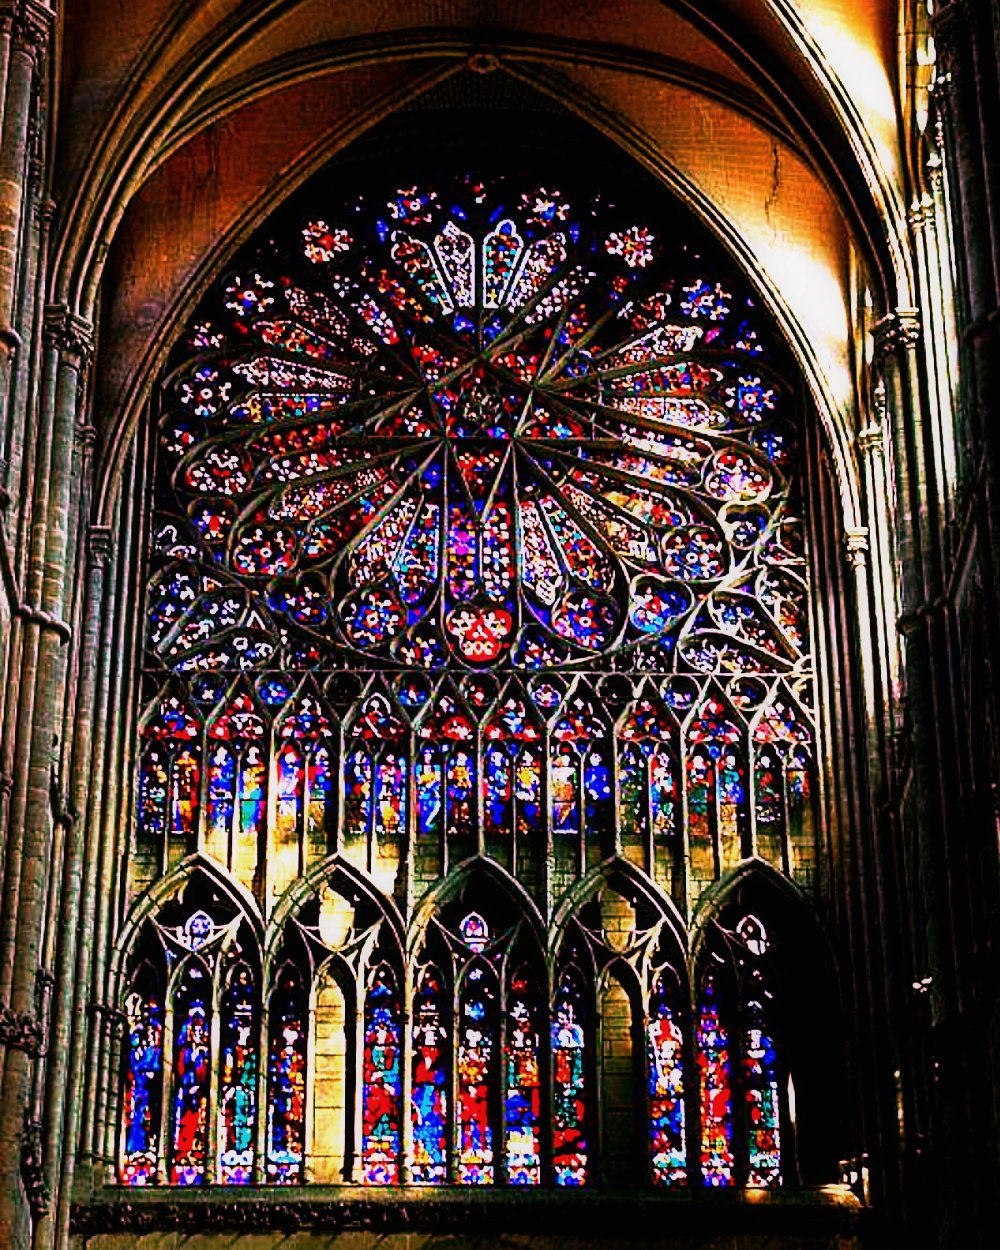 an analysis of the tracey in a rose window of washington cathedral washington dc